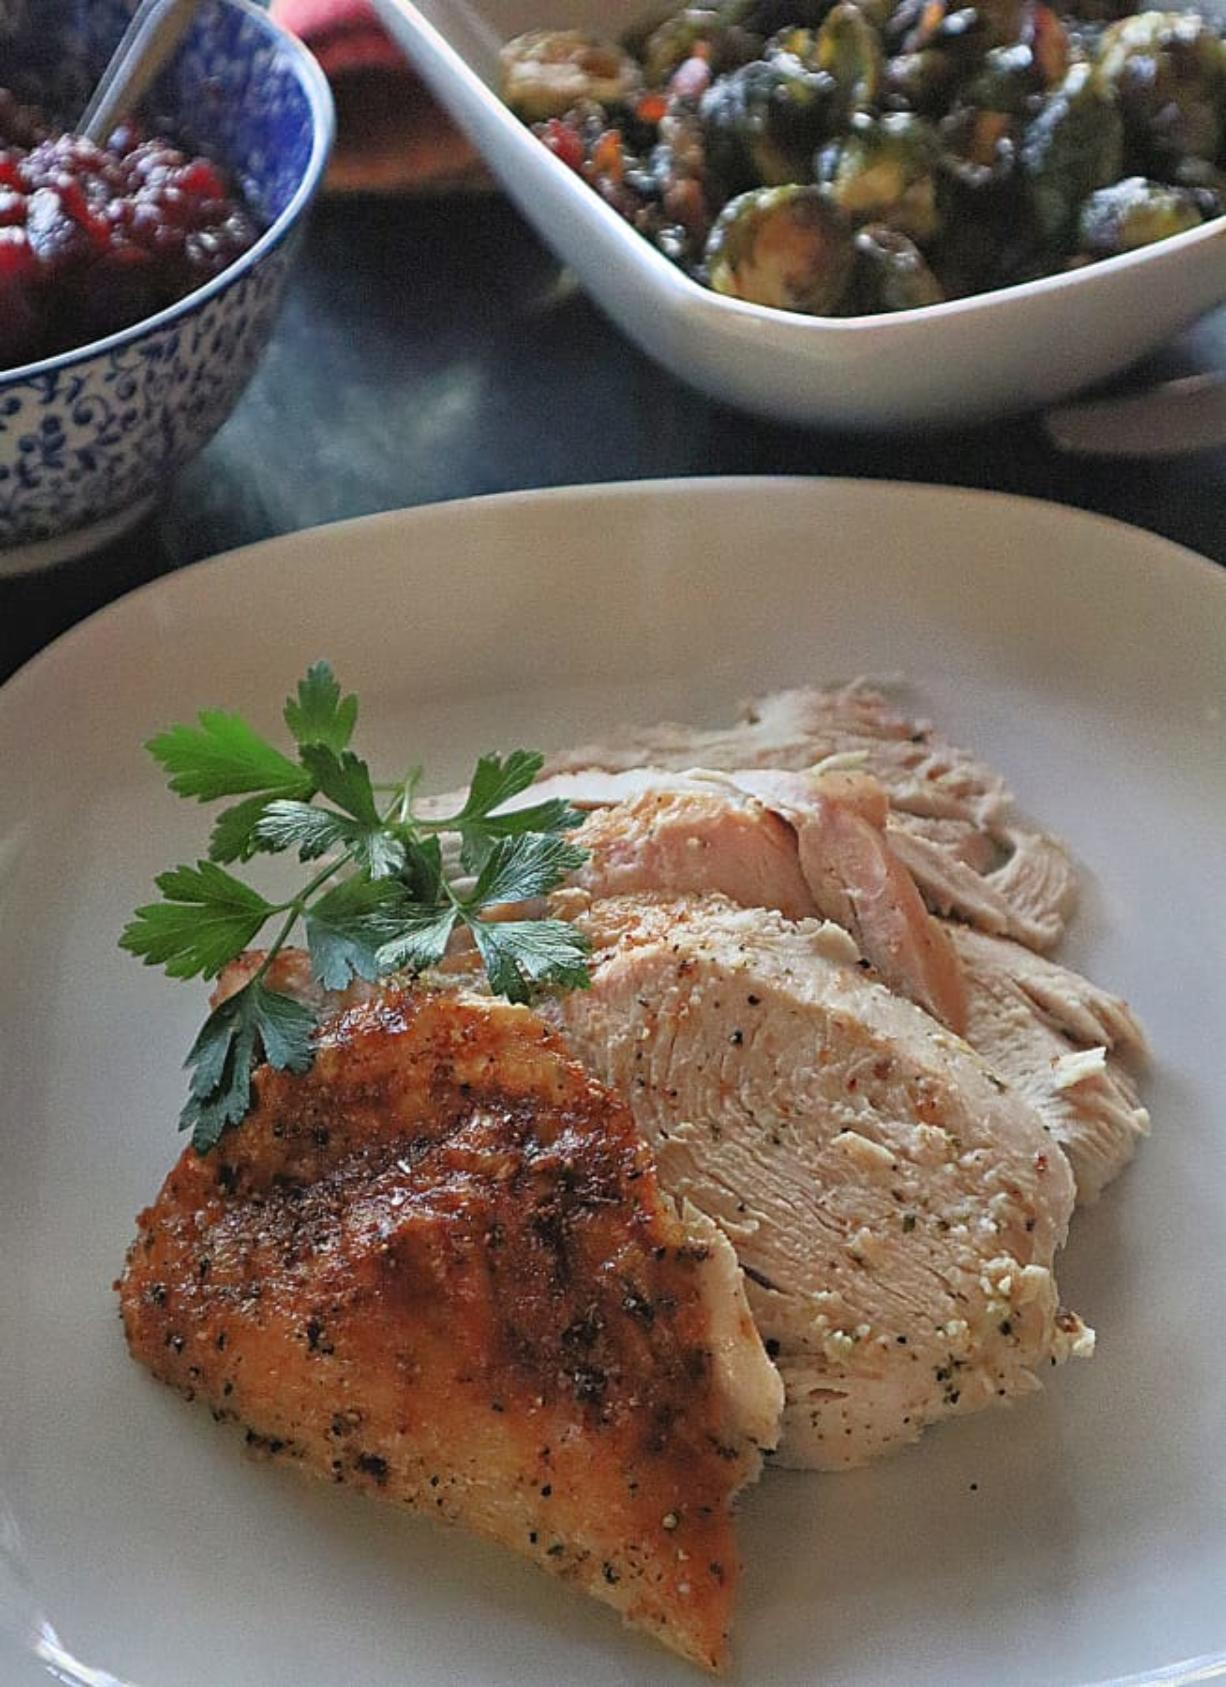 A full or split turkey breast is a great option for smaller crowds and inexperienced cooks on Thanksgiving.